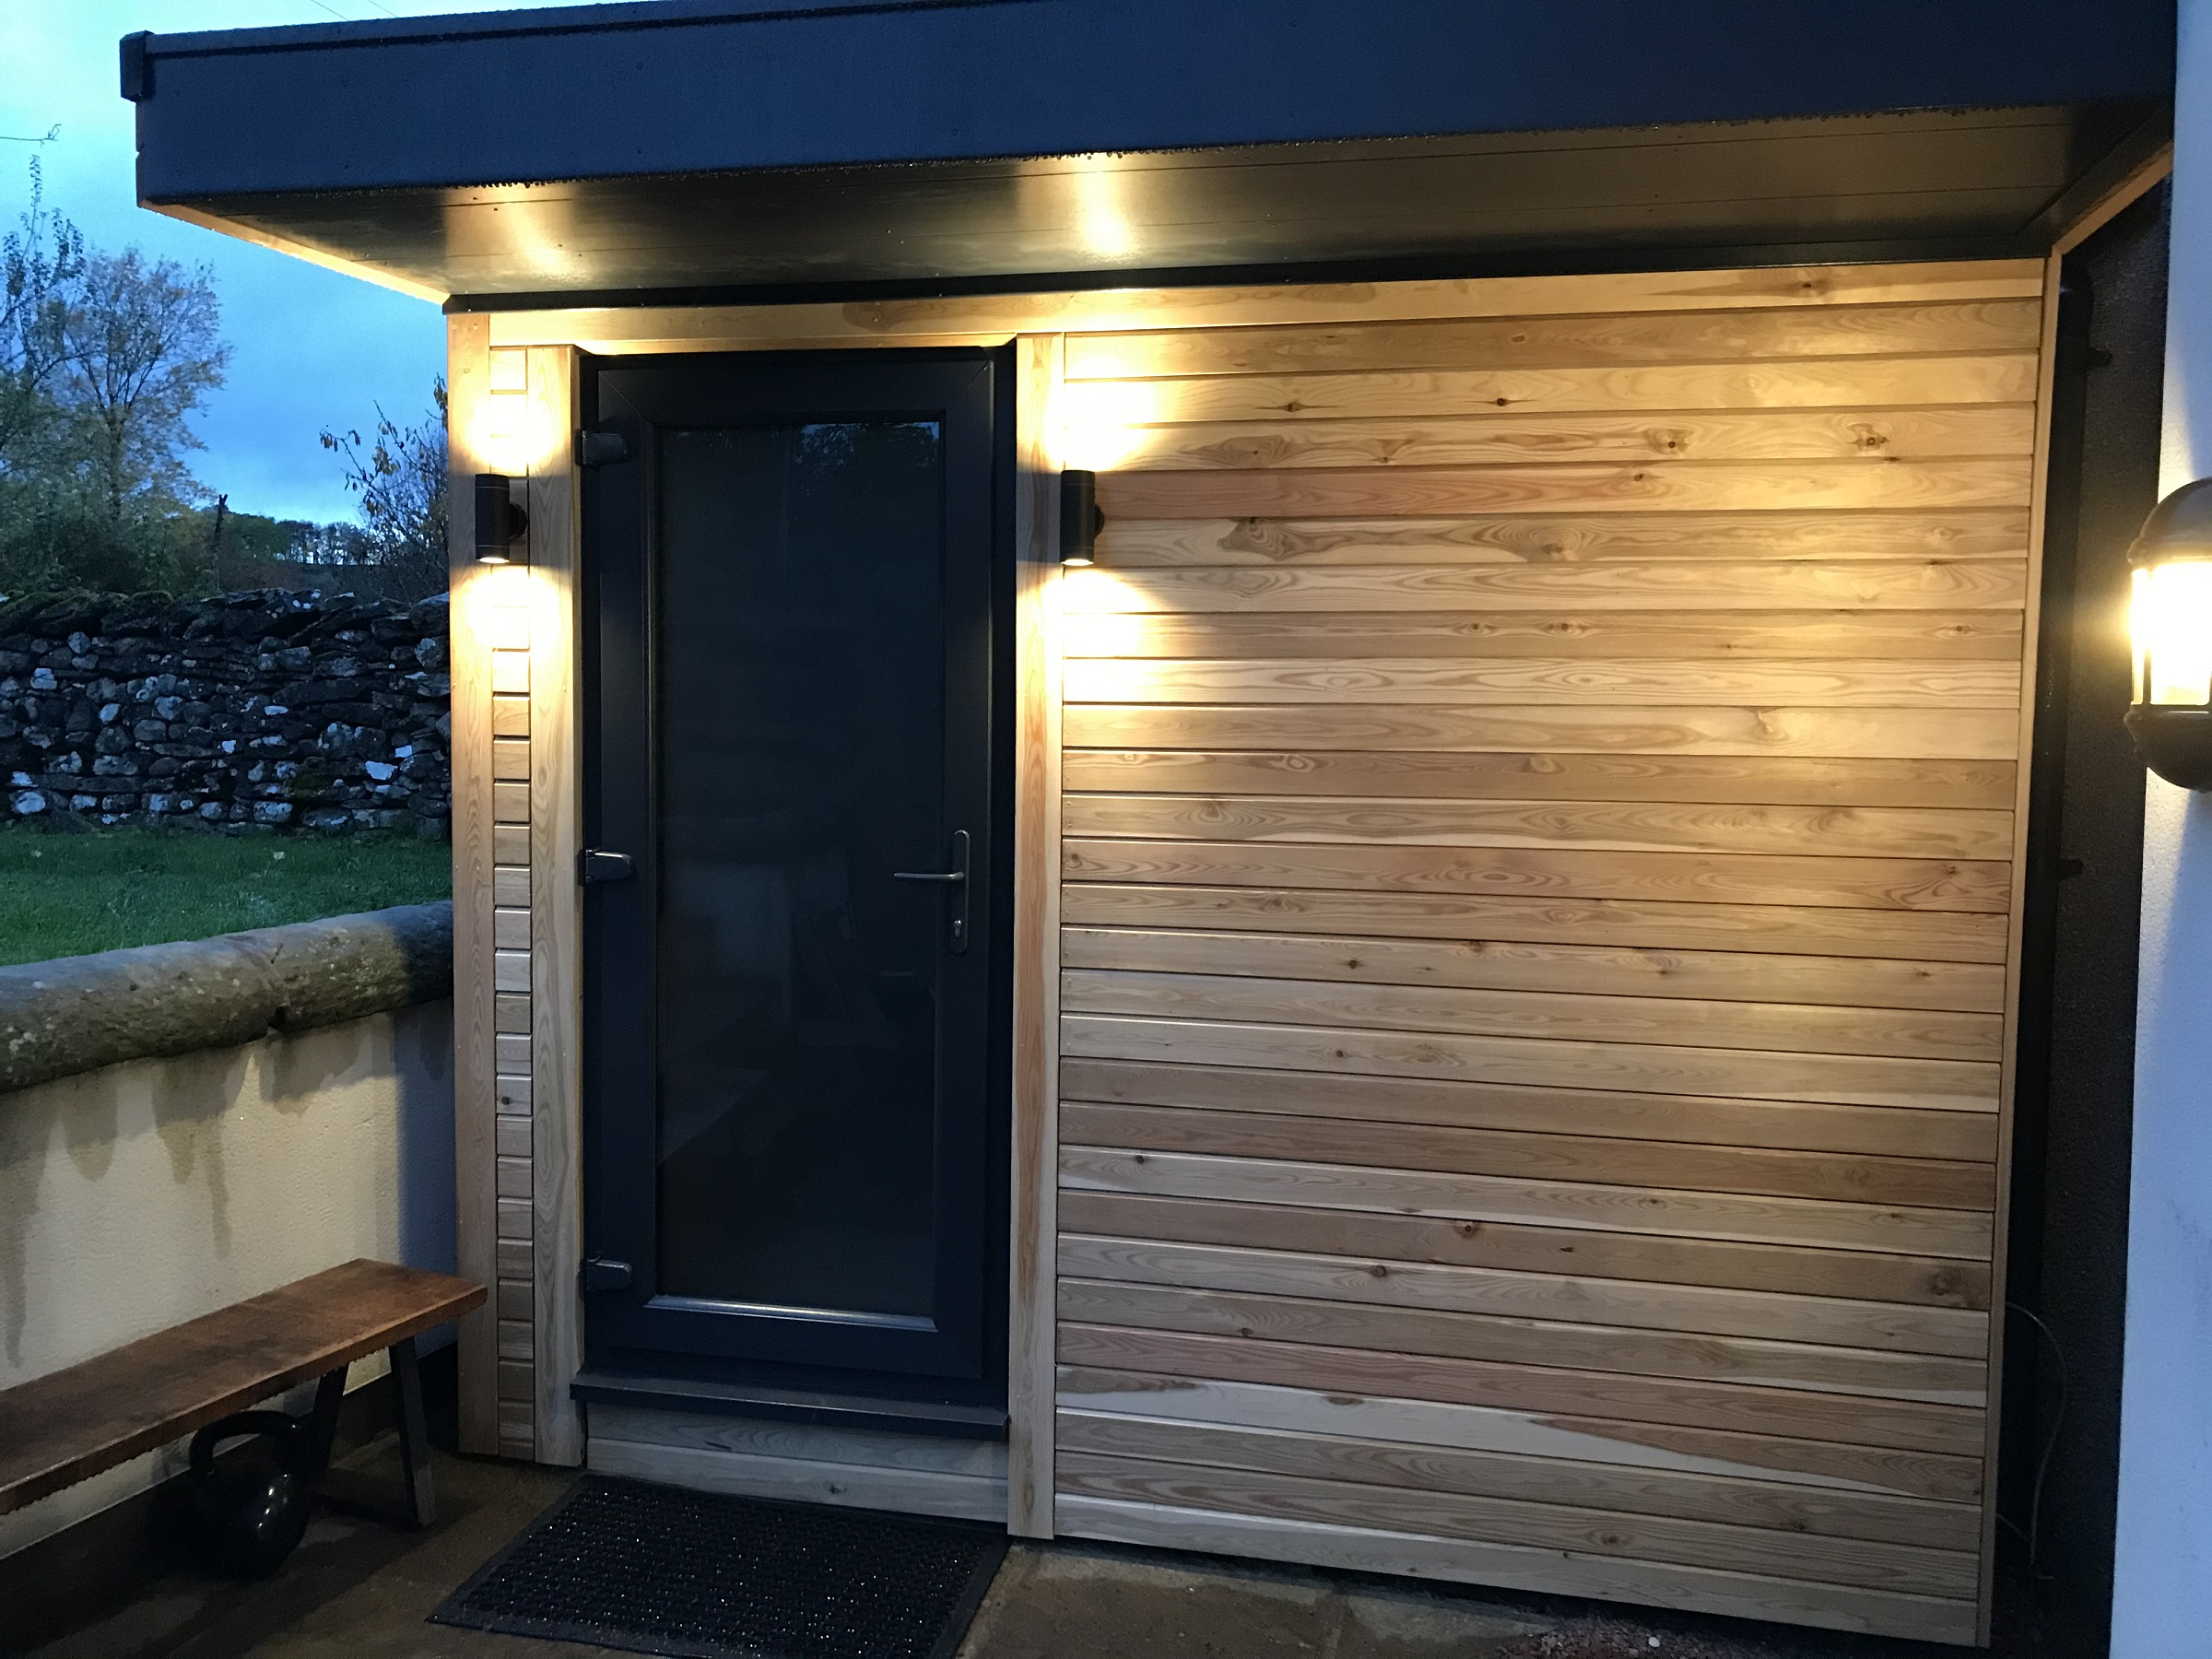 Garden rooms made beautiful with SterlingOSB Zero